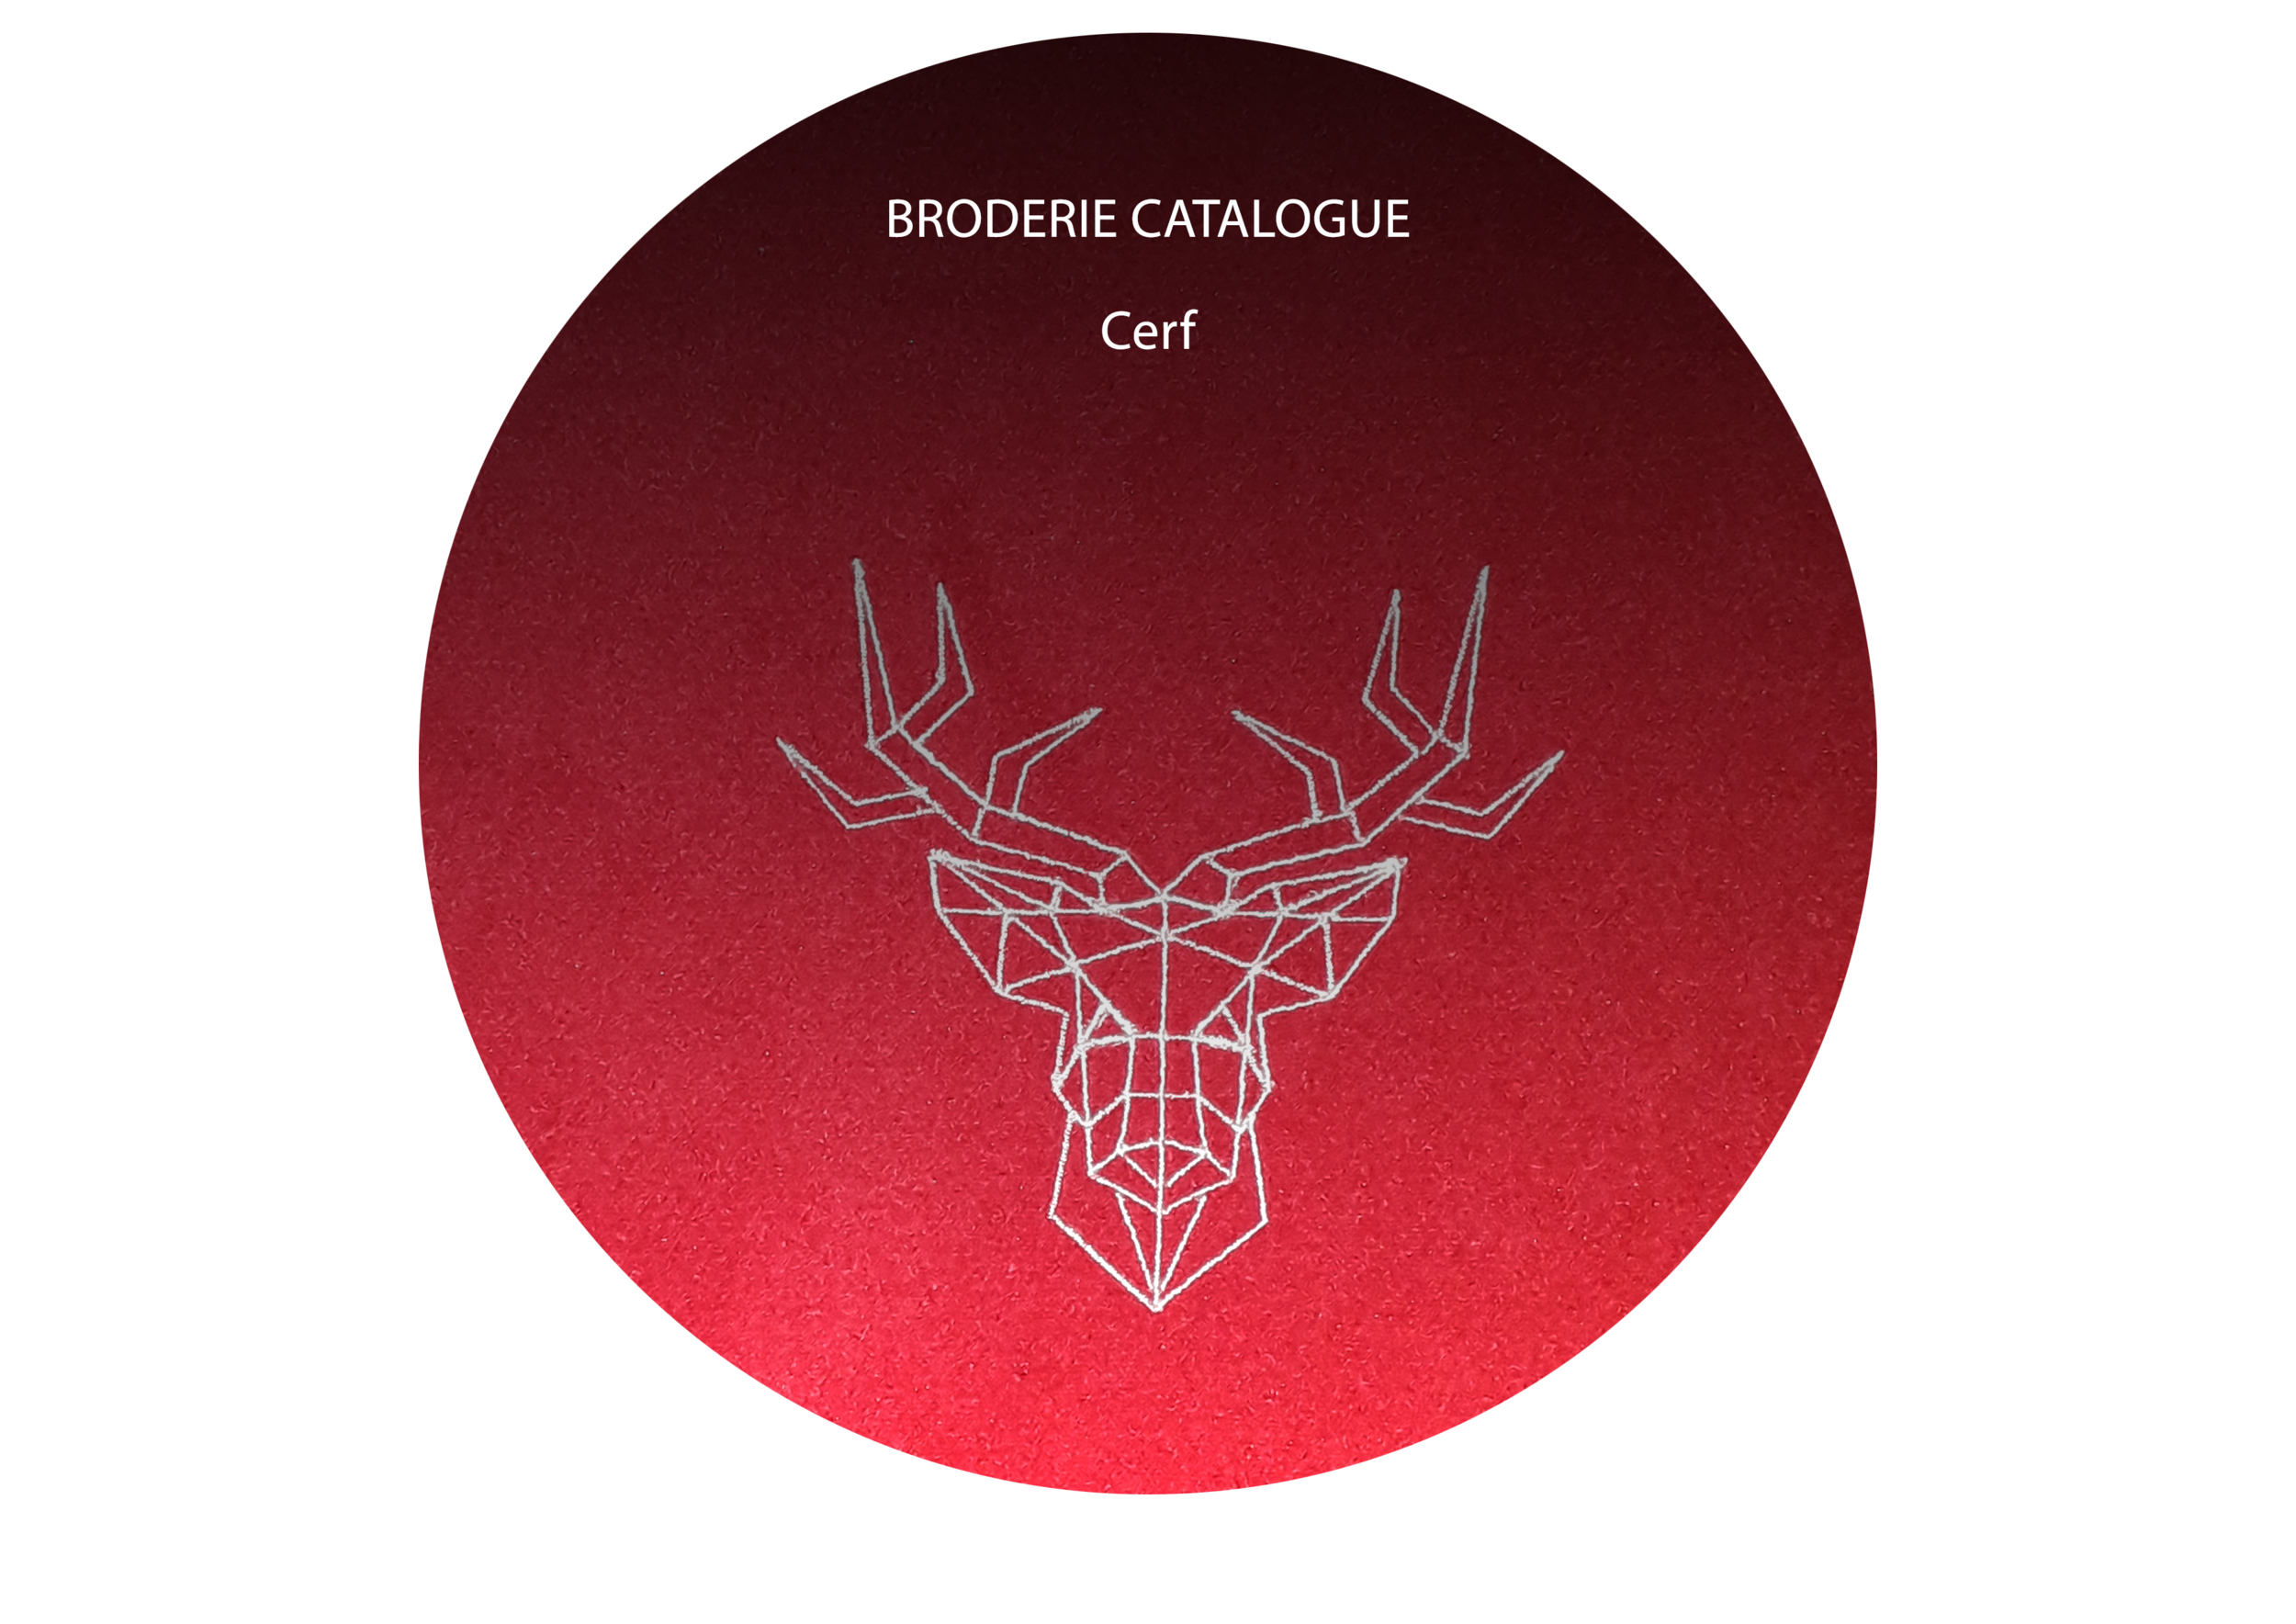 BRODERIE Catalogue Cerf